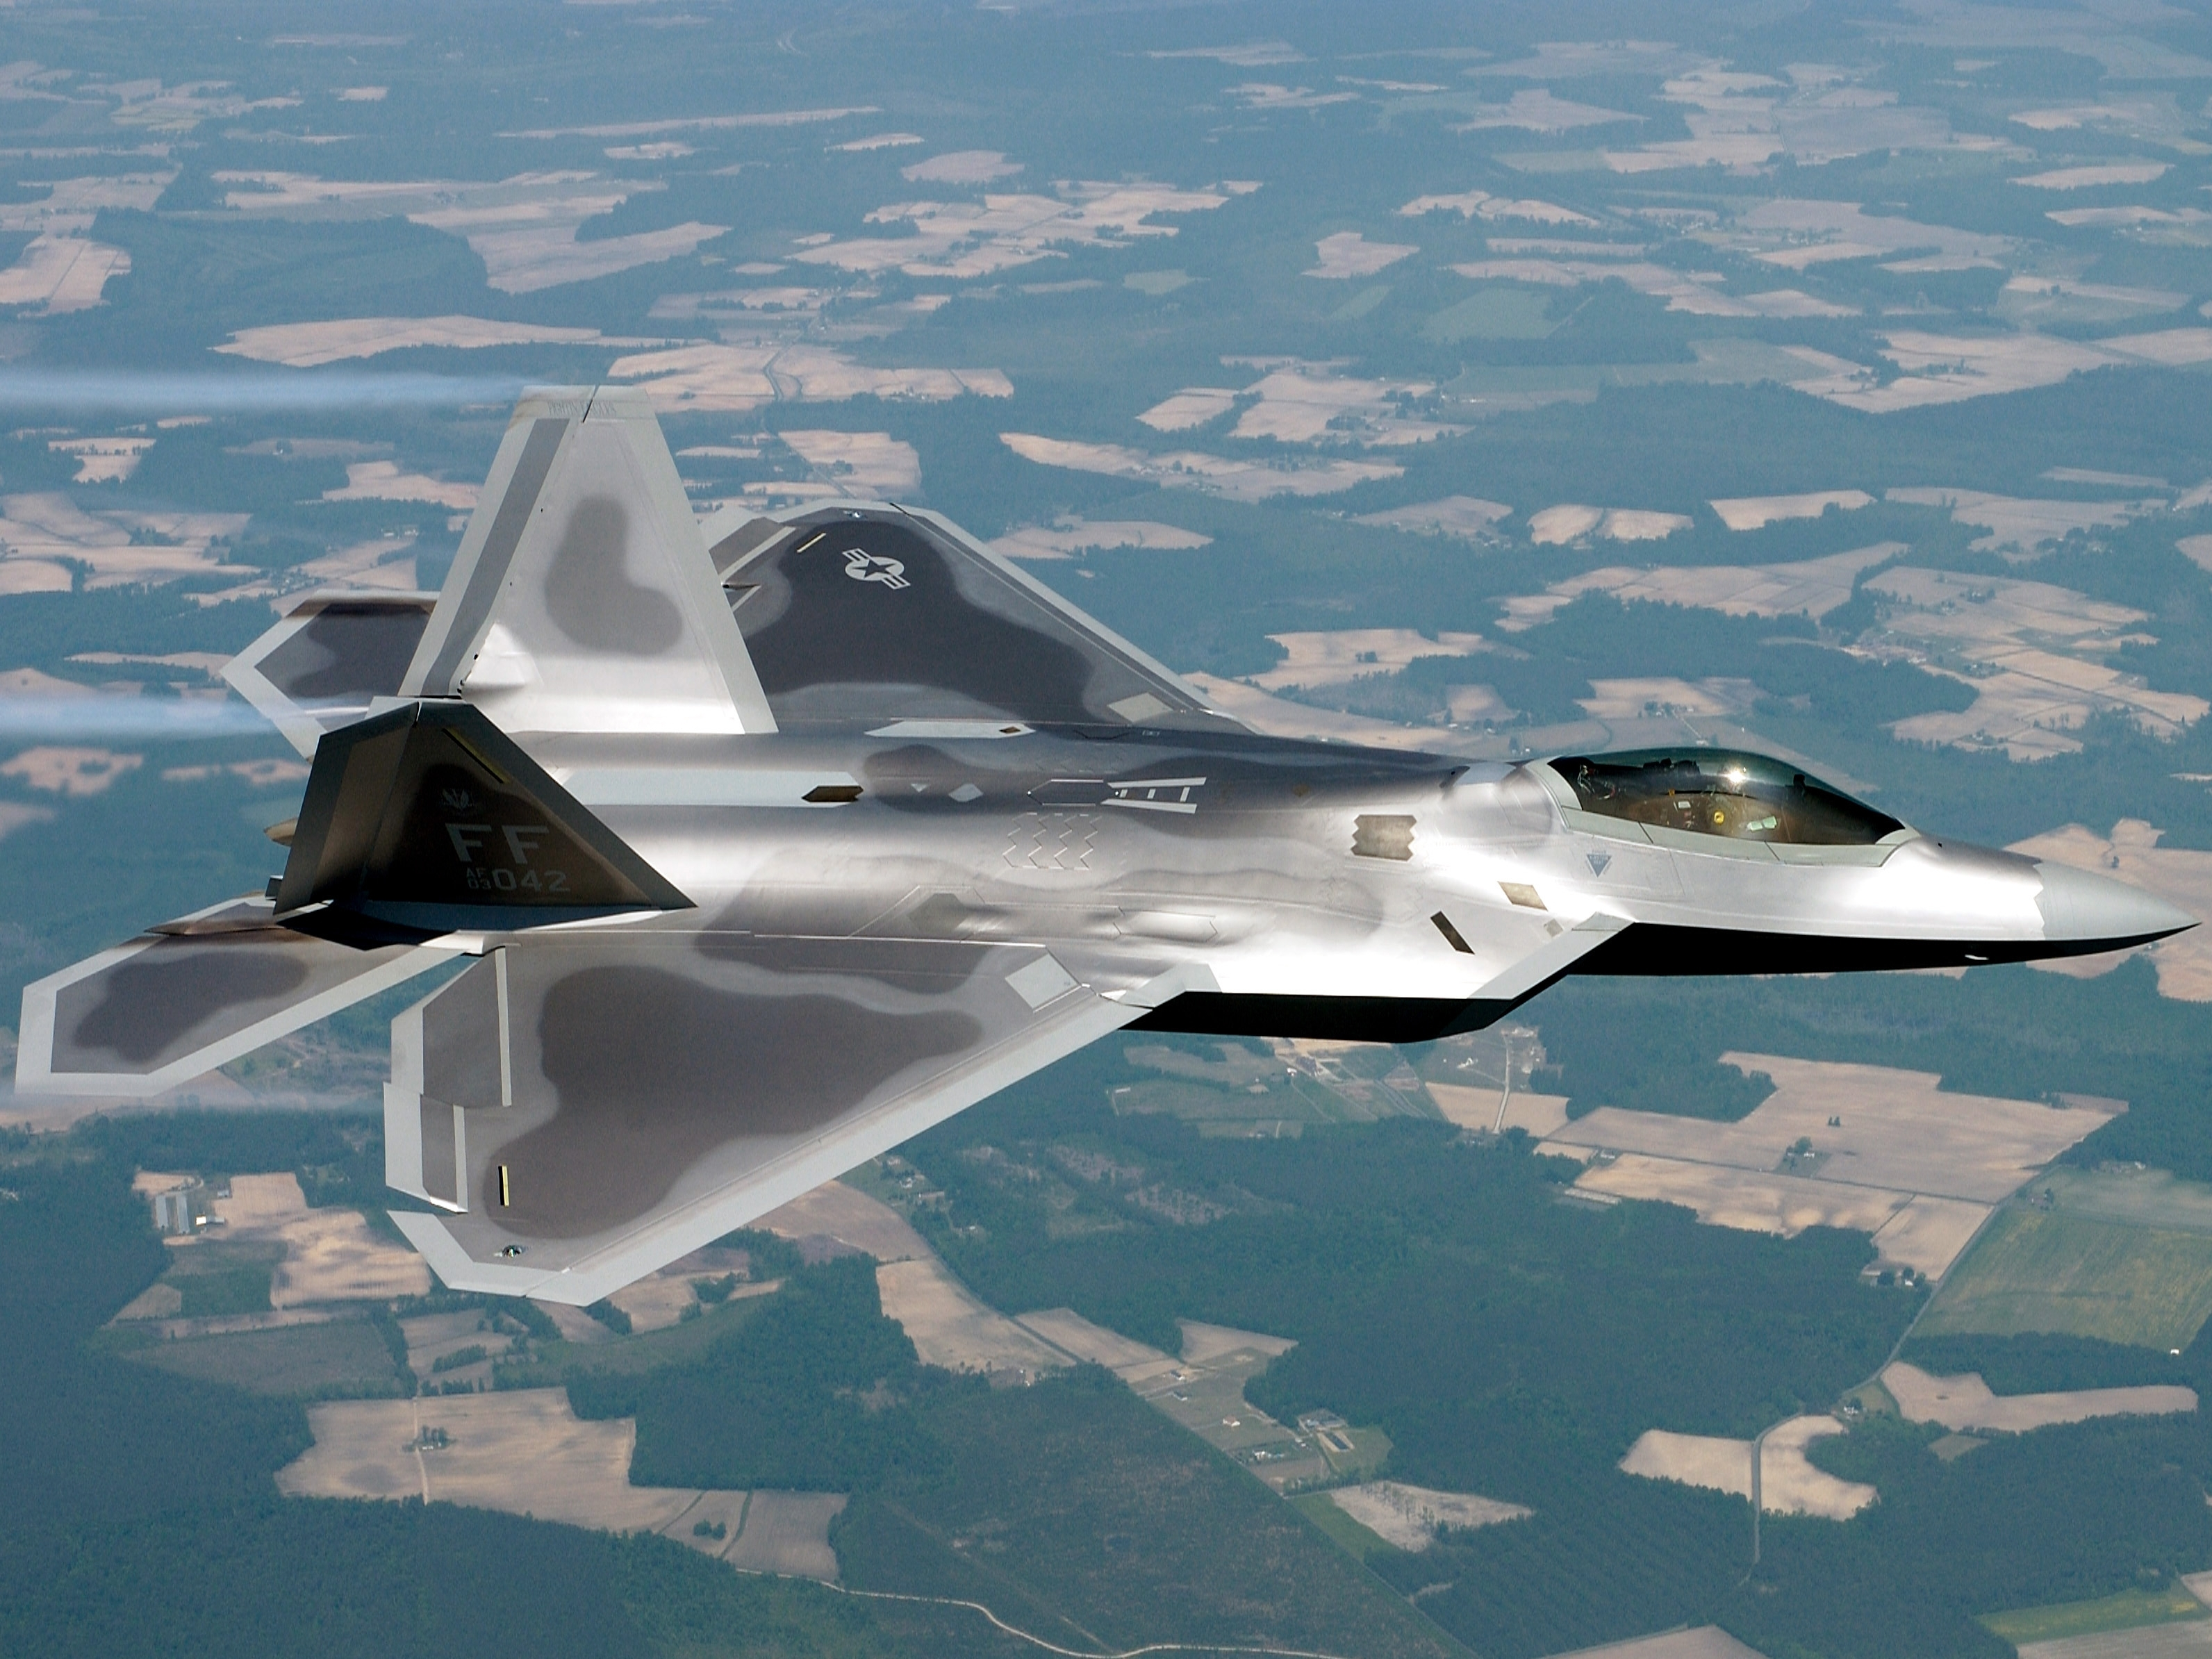 98 lockheed martin f-22 raptor hd wallpapers | background images